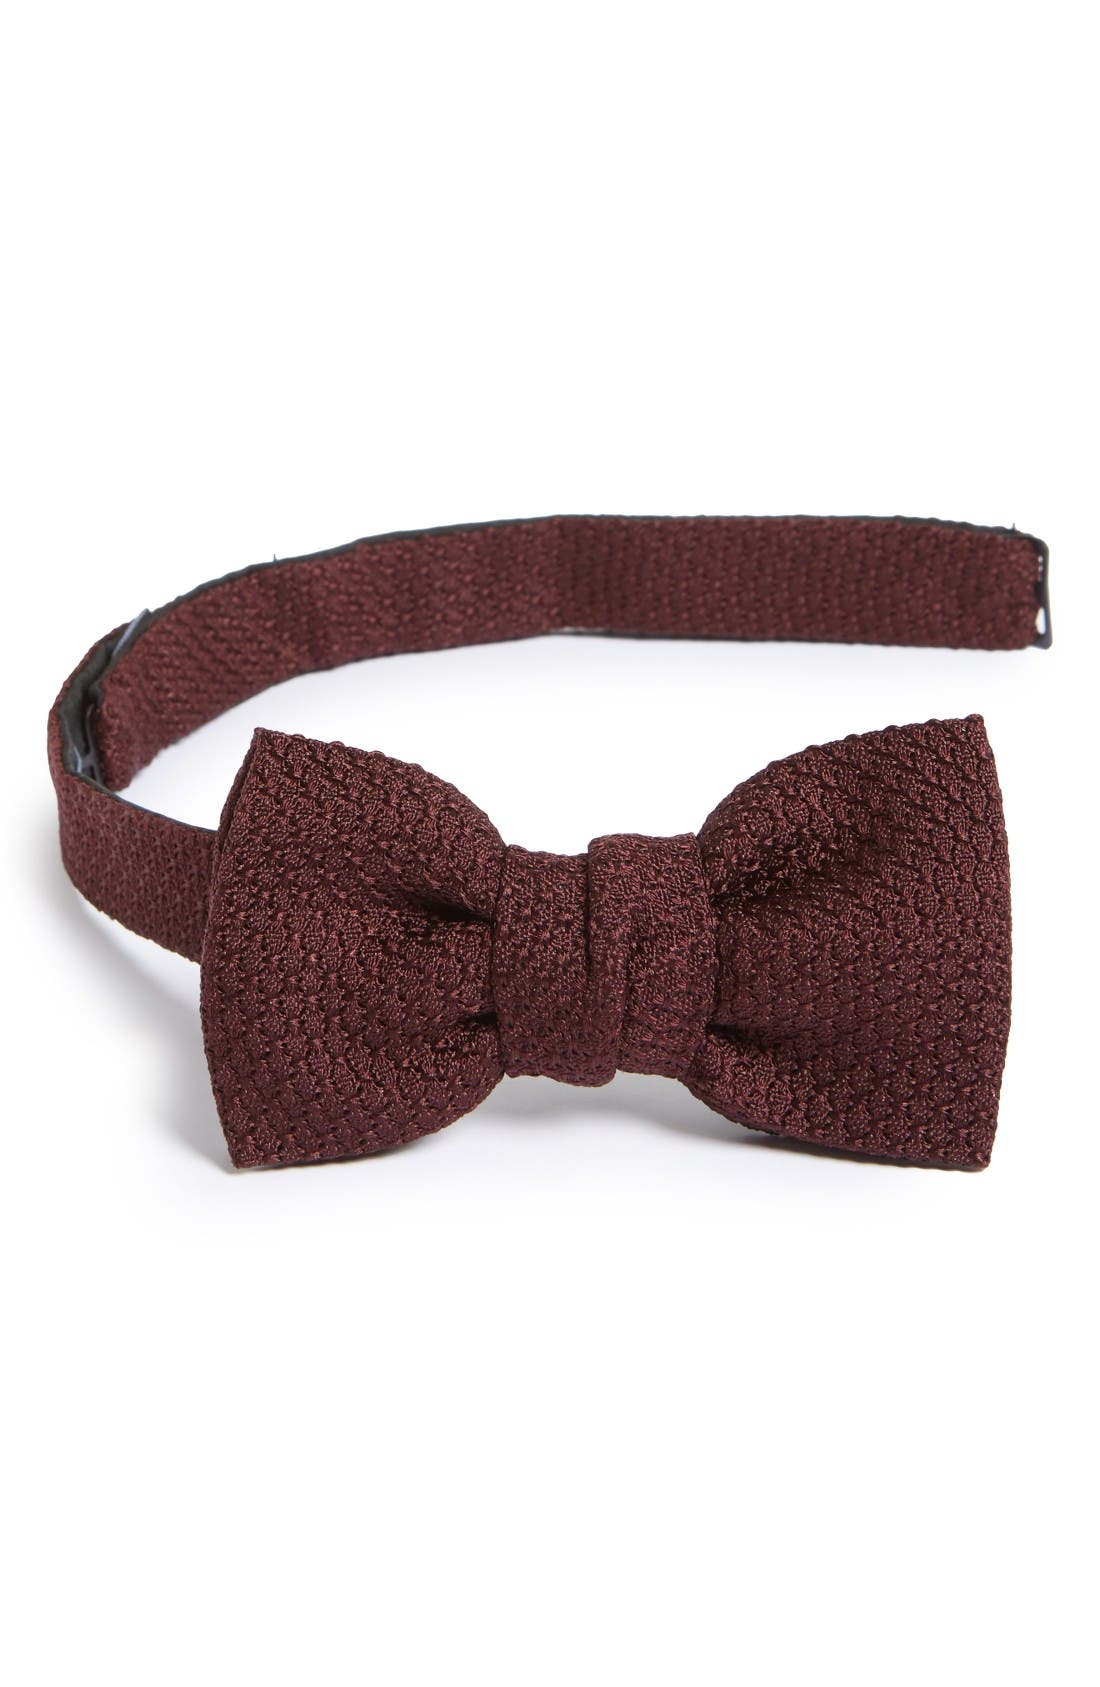 Main Image - Lanvin New Classic Texture Knit Silk Bow Tie